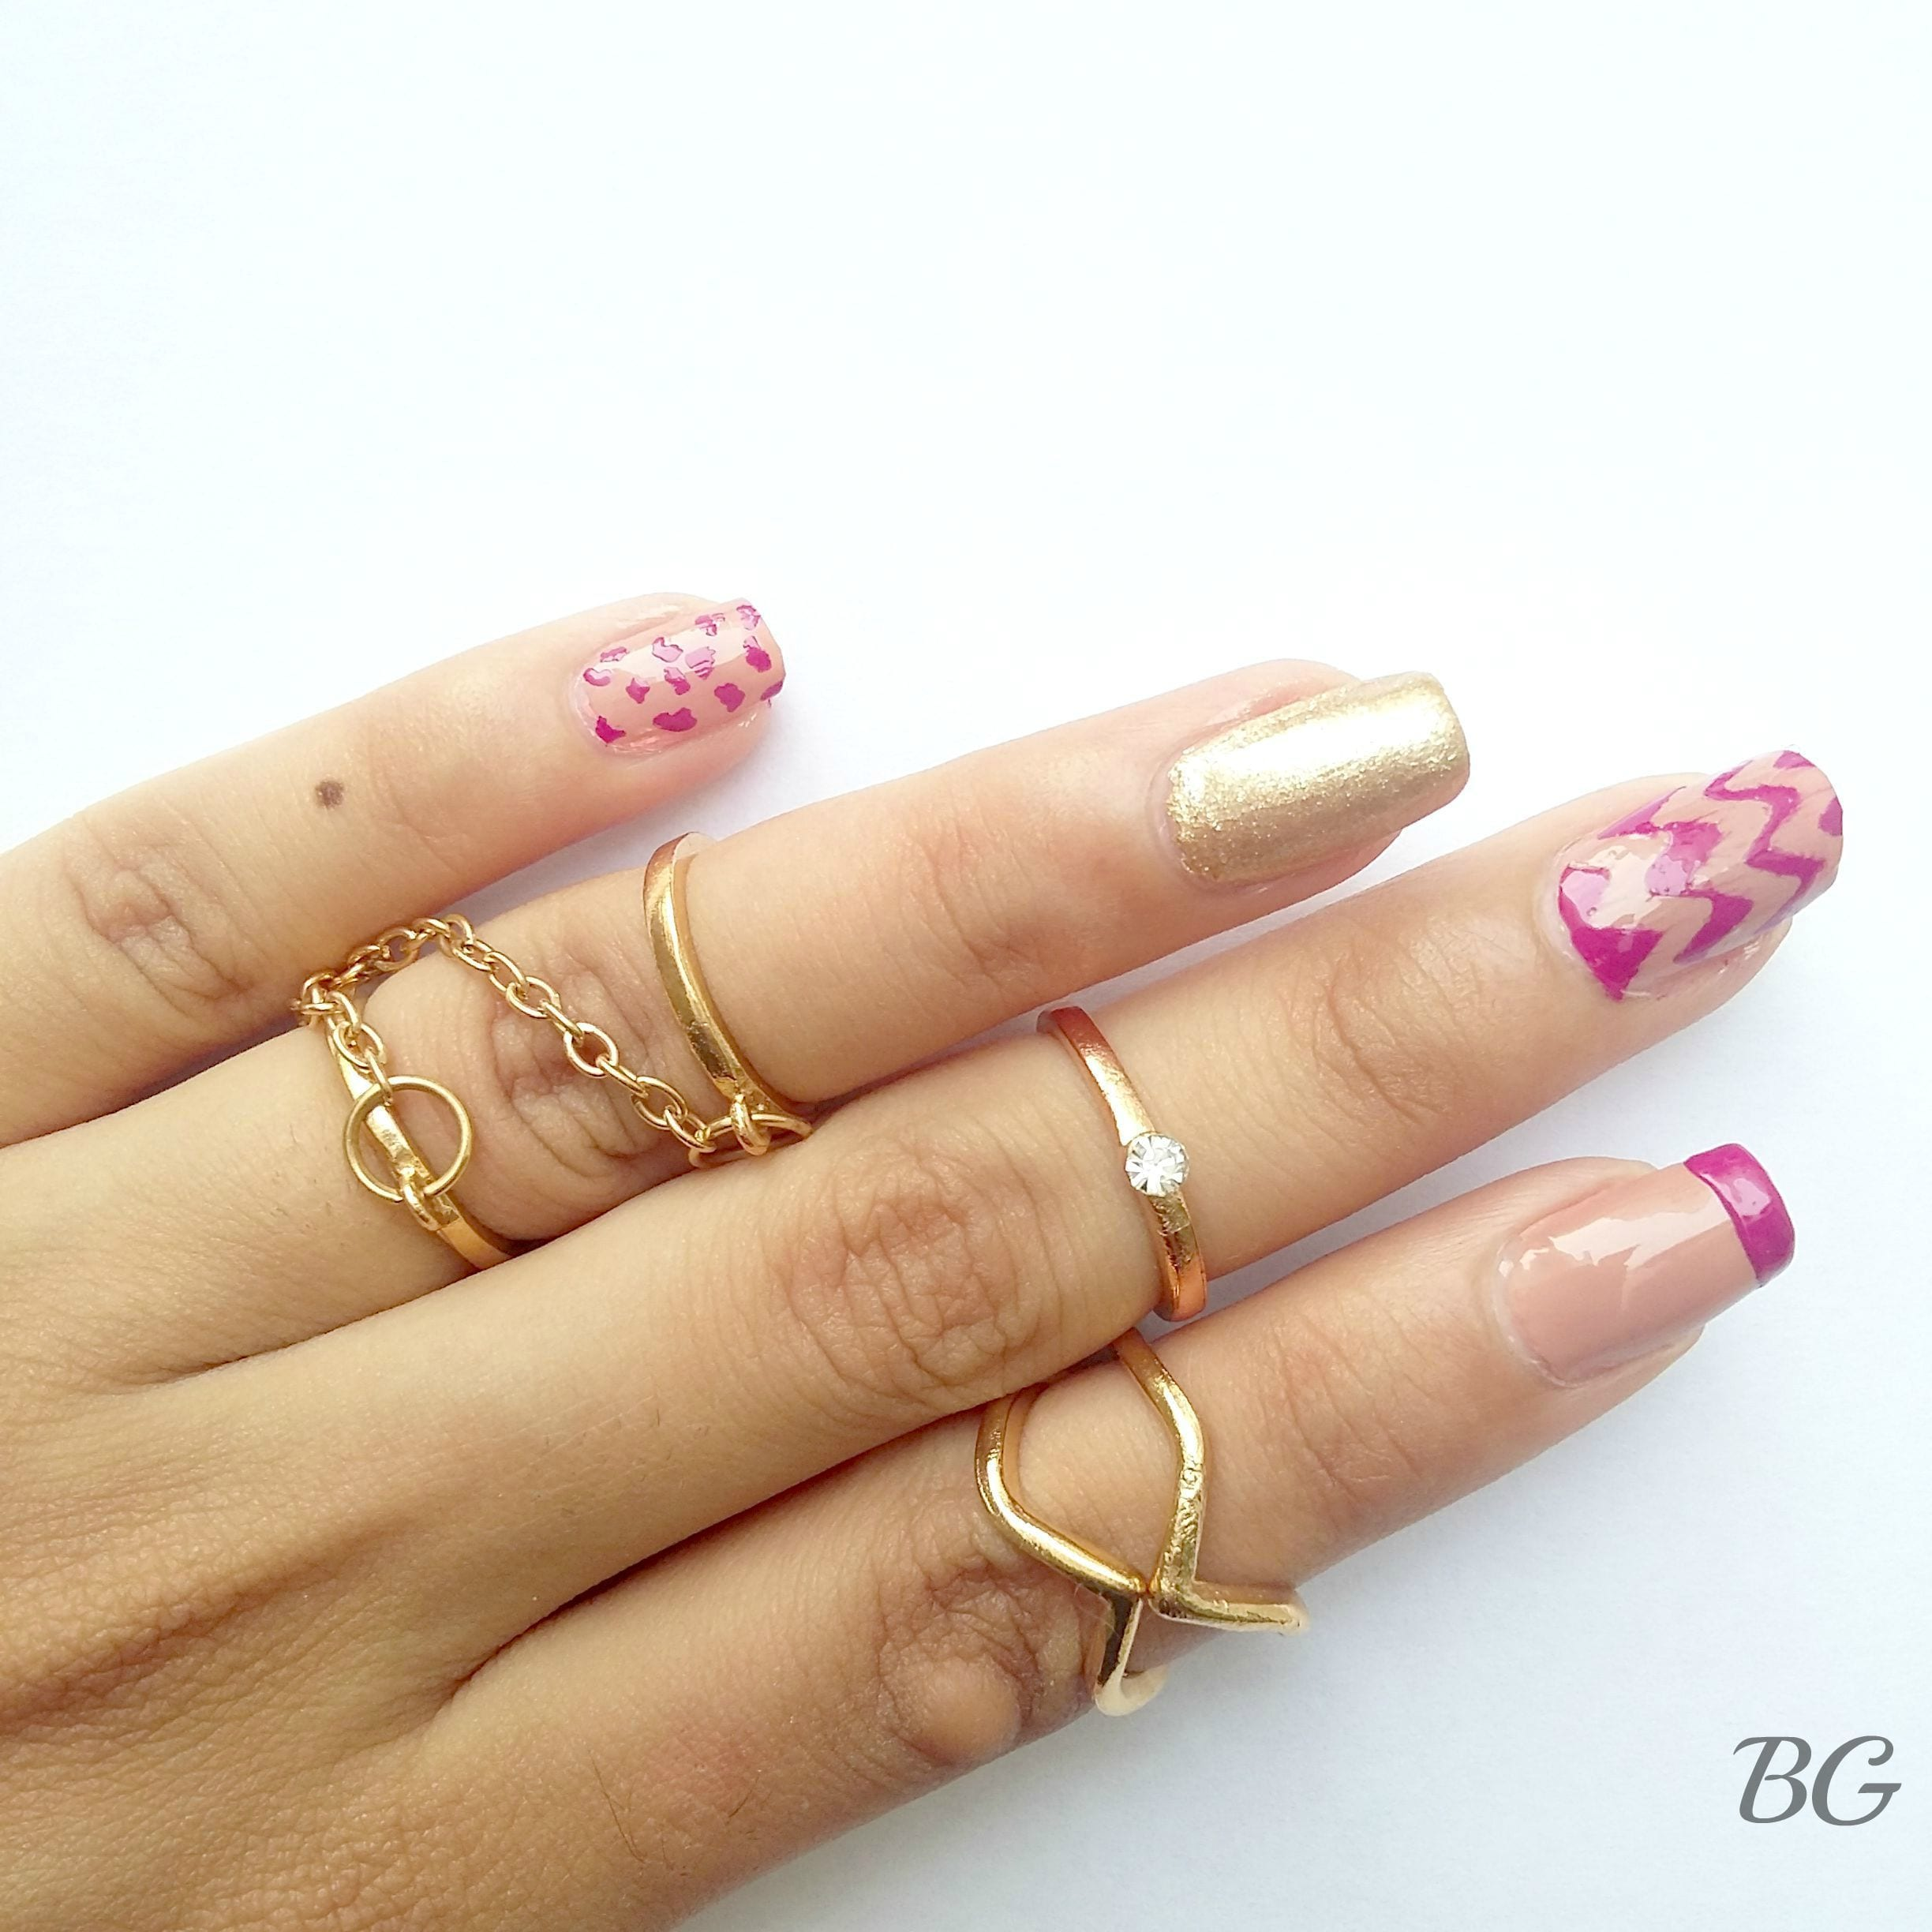 Nail-Art-Tutorial-Gold-Chevron-4 DIY Gold Chevron Nail Design-Step By Step Nail Art Tutorial